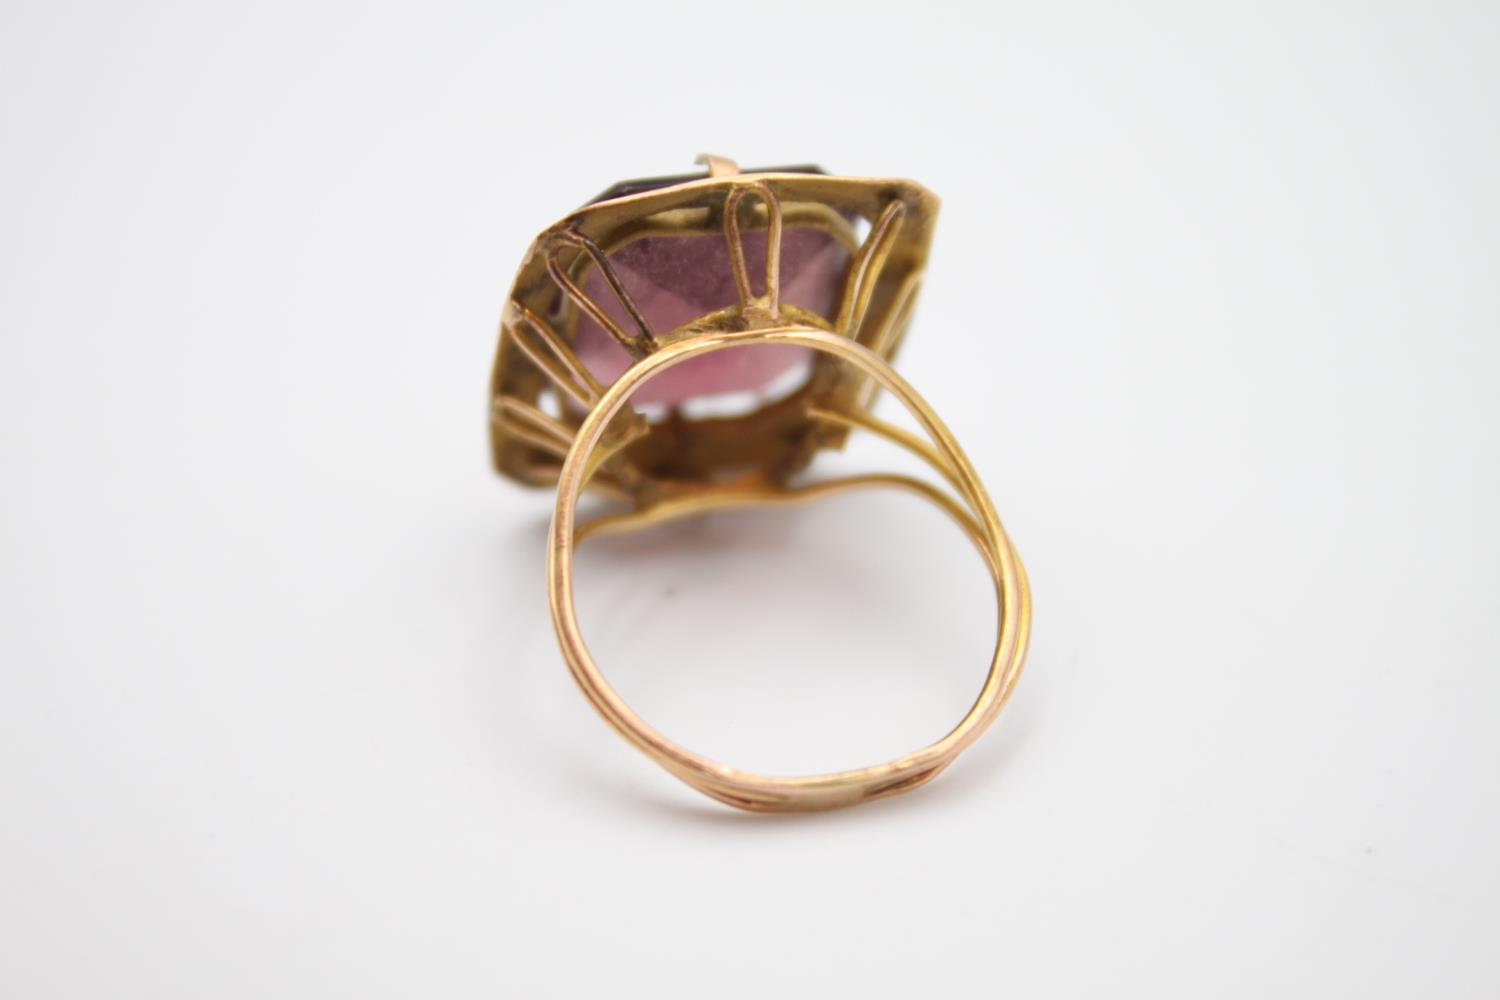 15ct rose gold amethyst paste cocktail ring 5.4g Size P - Image 3 of 5